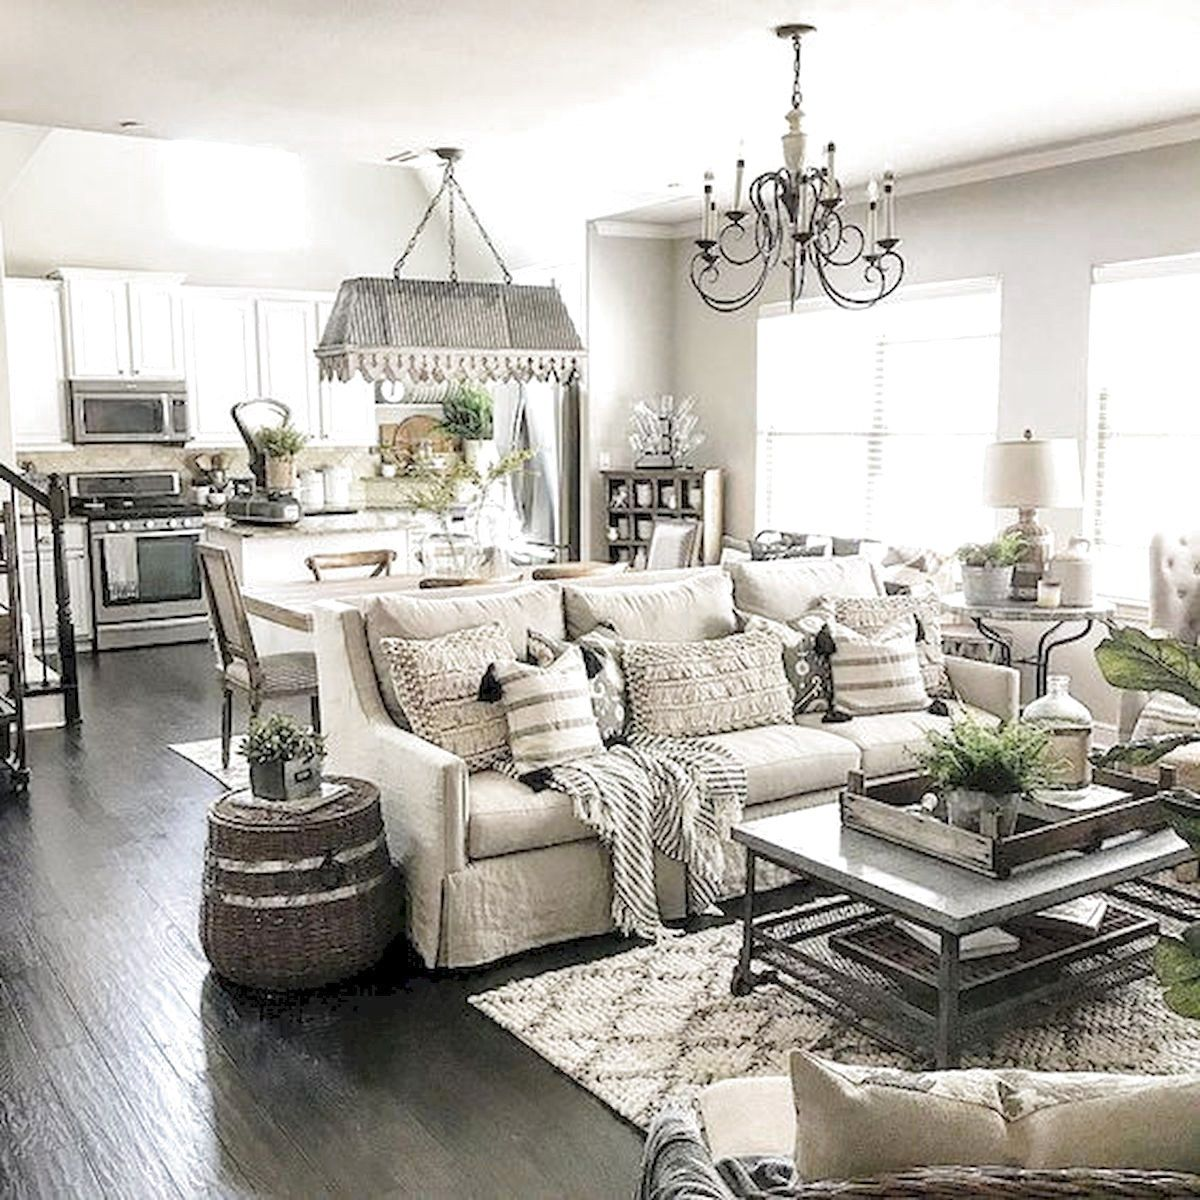 ✓12 Best Farmhouse Living Room Decor Ideas   The Expert Beautiful ...